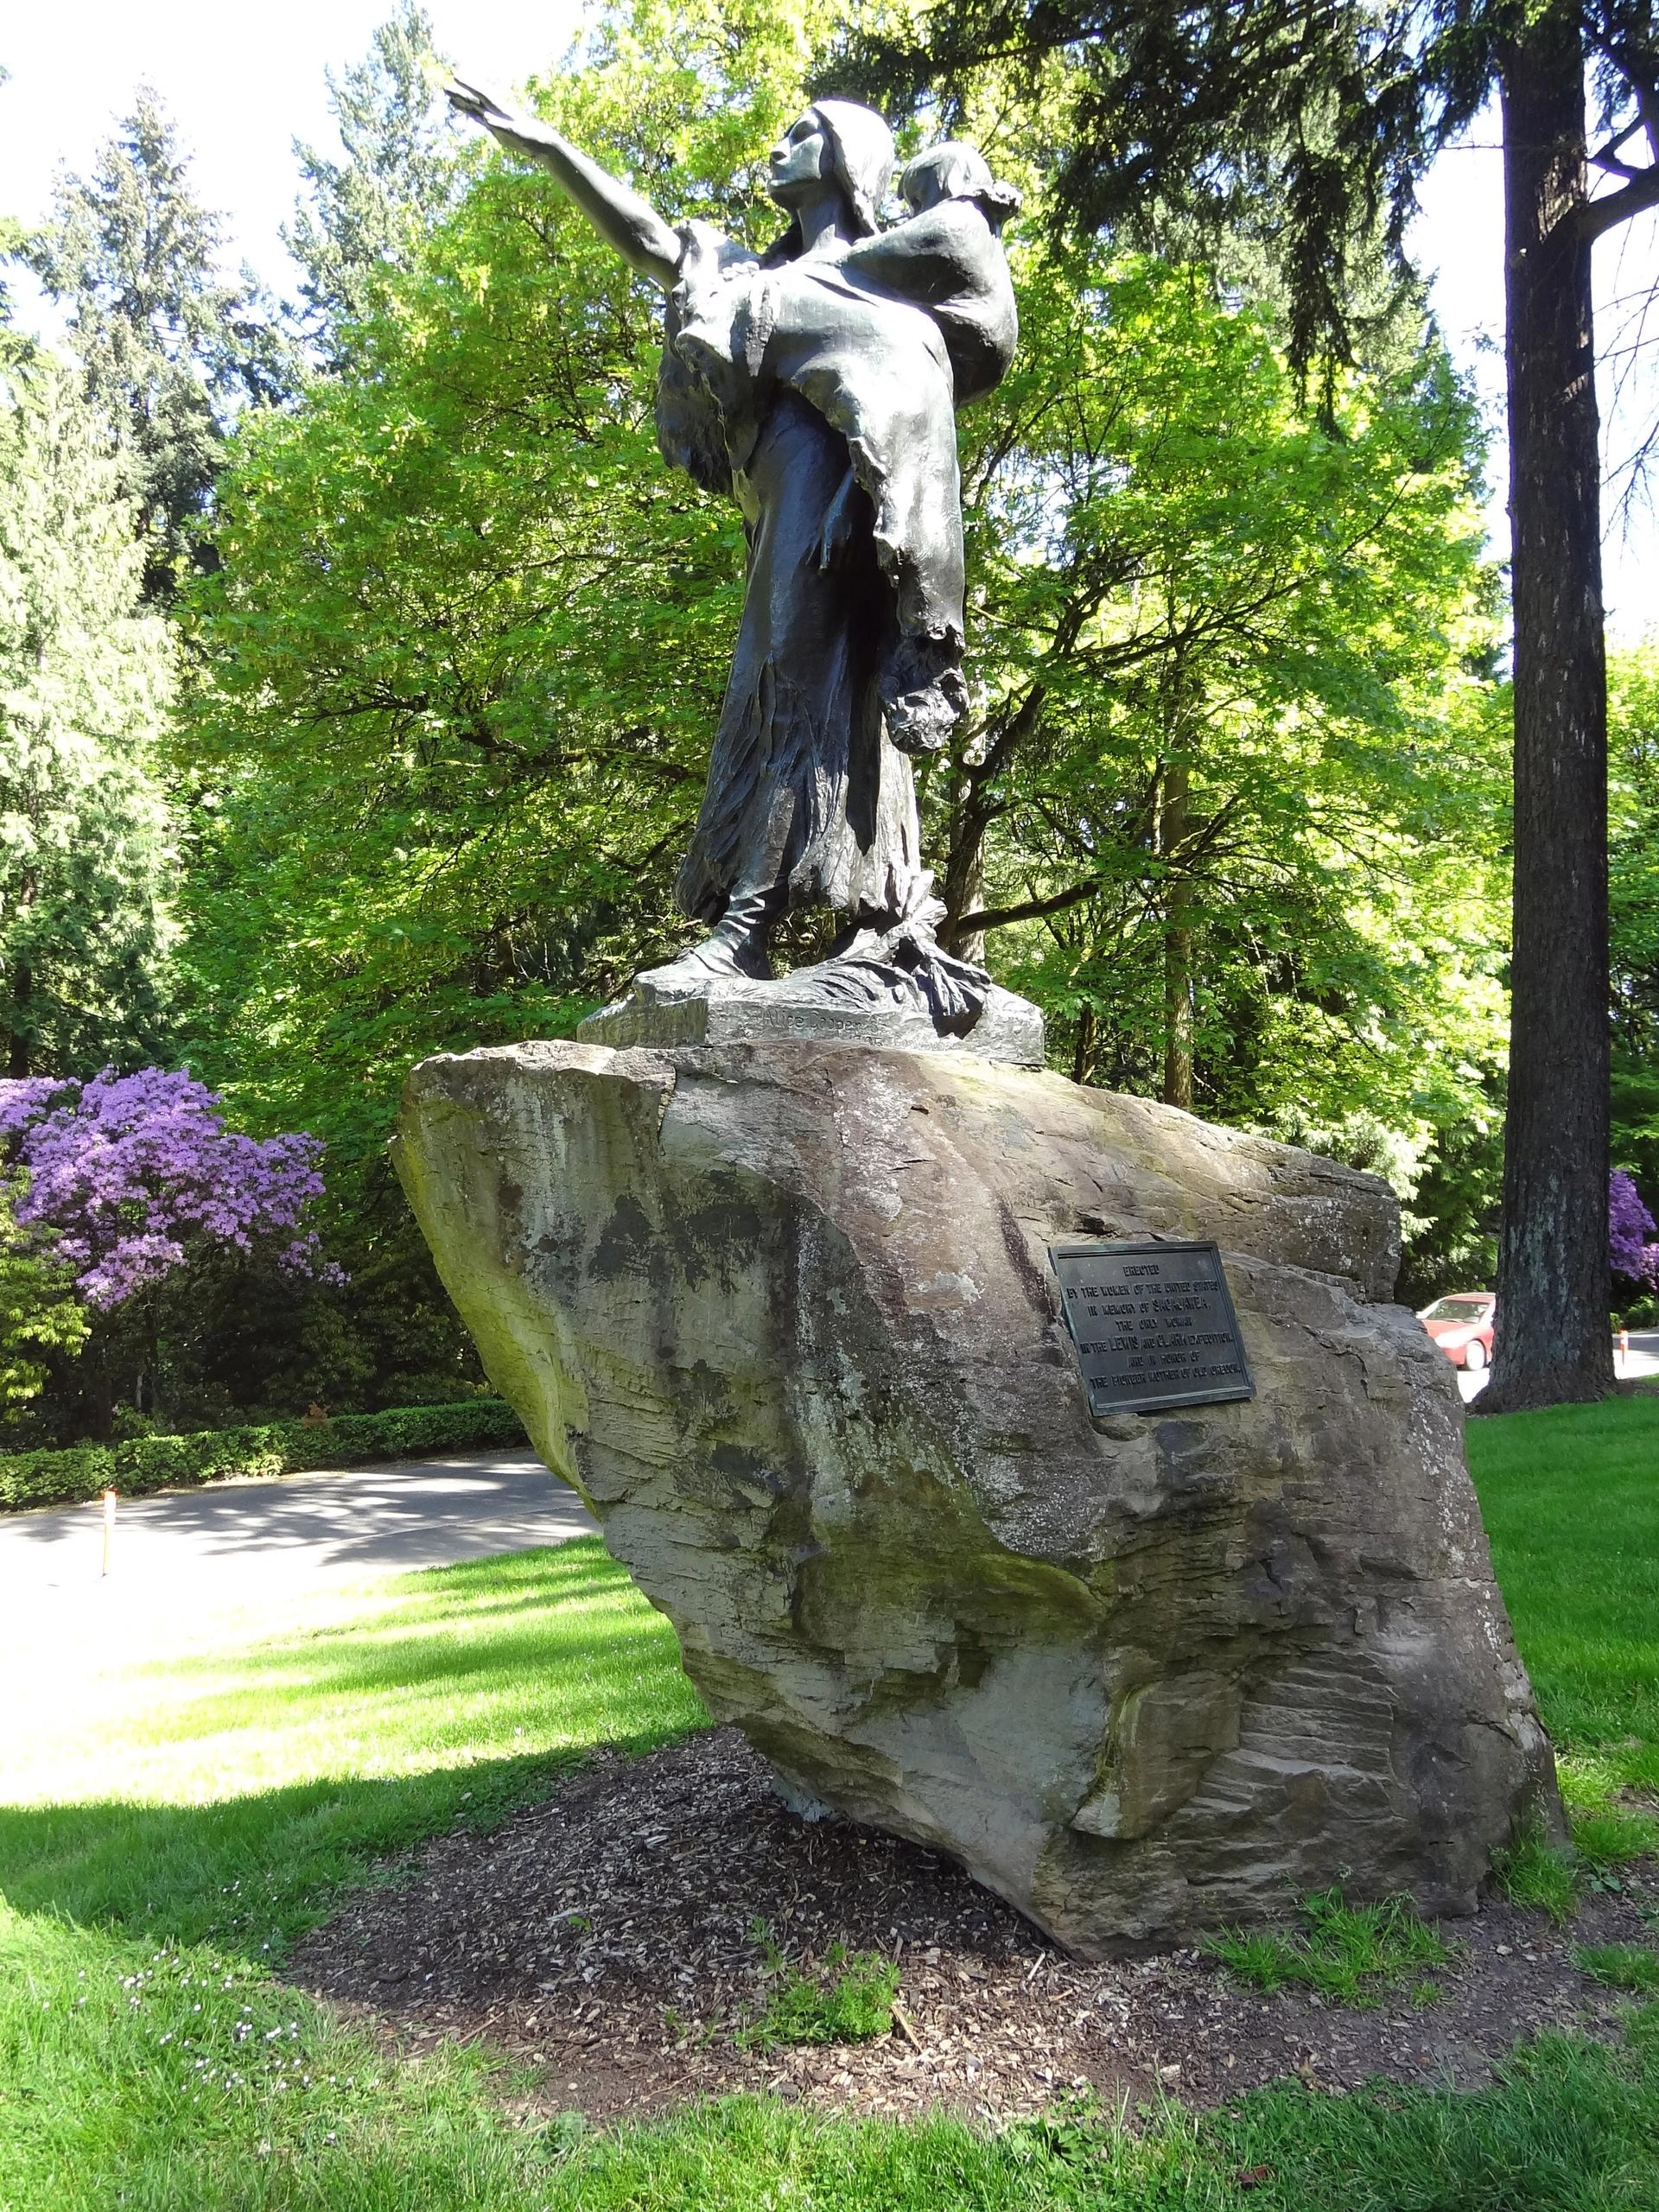 The Sacajawea and Jean-Baptiste sculpture in Washington Park, Portland was funded by women, sculpted by a woman artist, and conceived to promote women's suffrage. And yet the monument to the Lemhi Shoshone guide tells a conveniently limited version of her story Photo: Simon Cobb